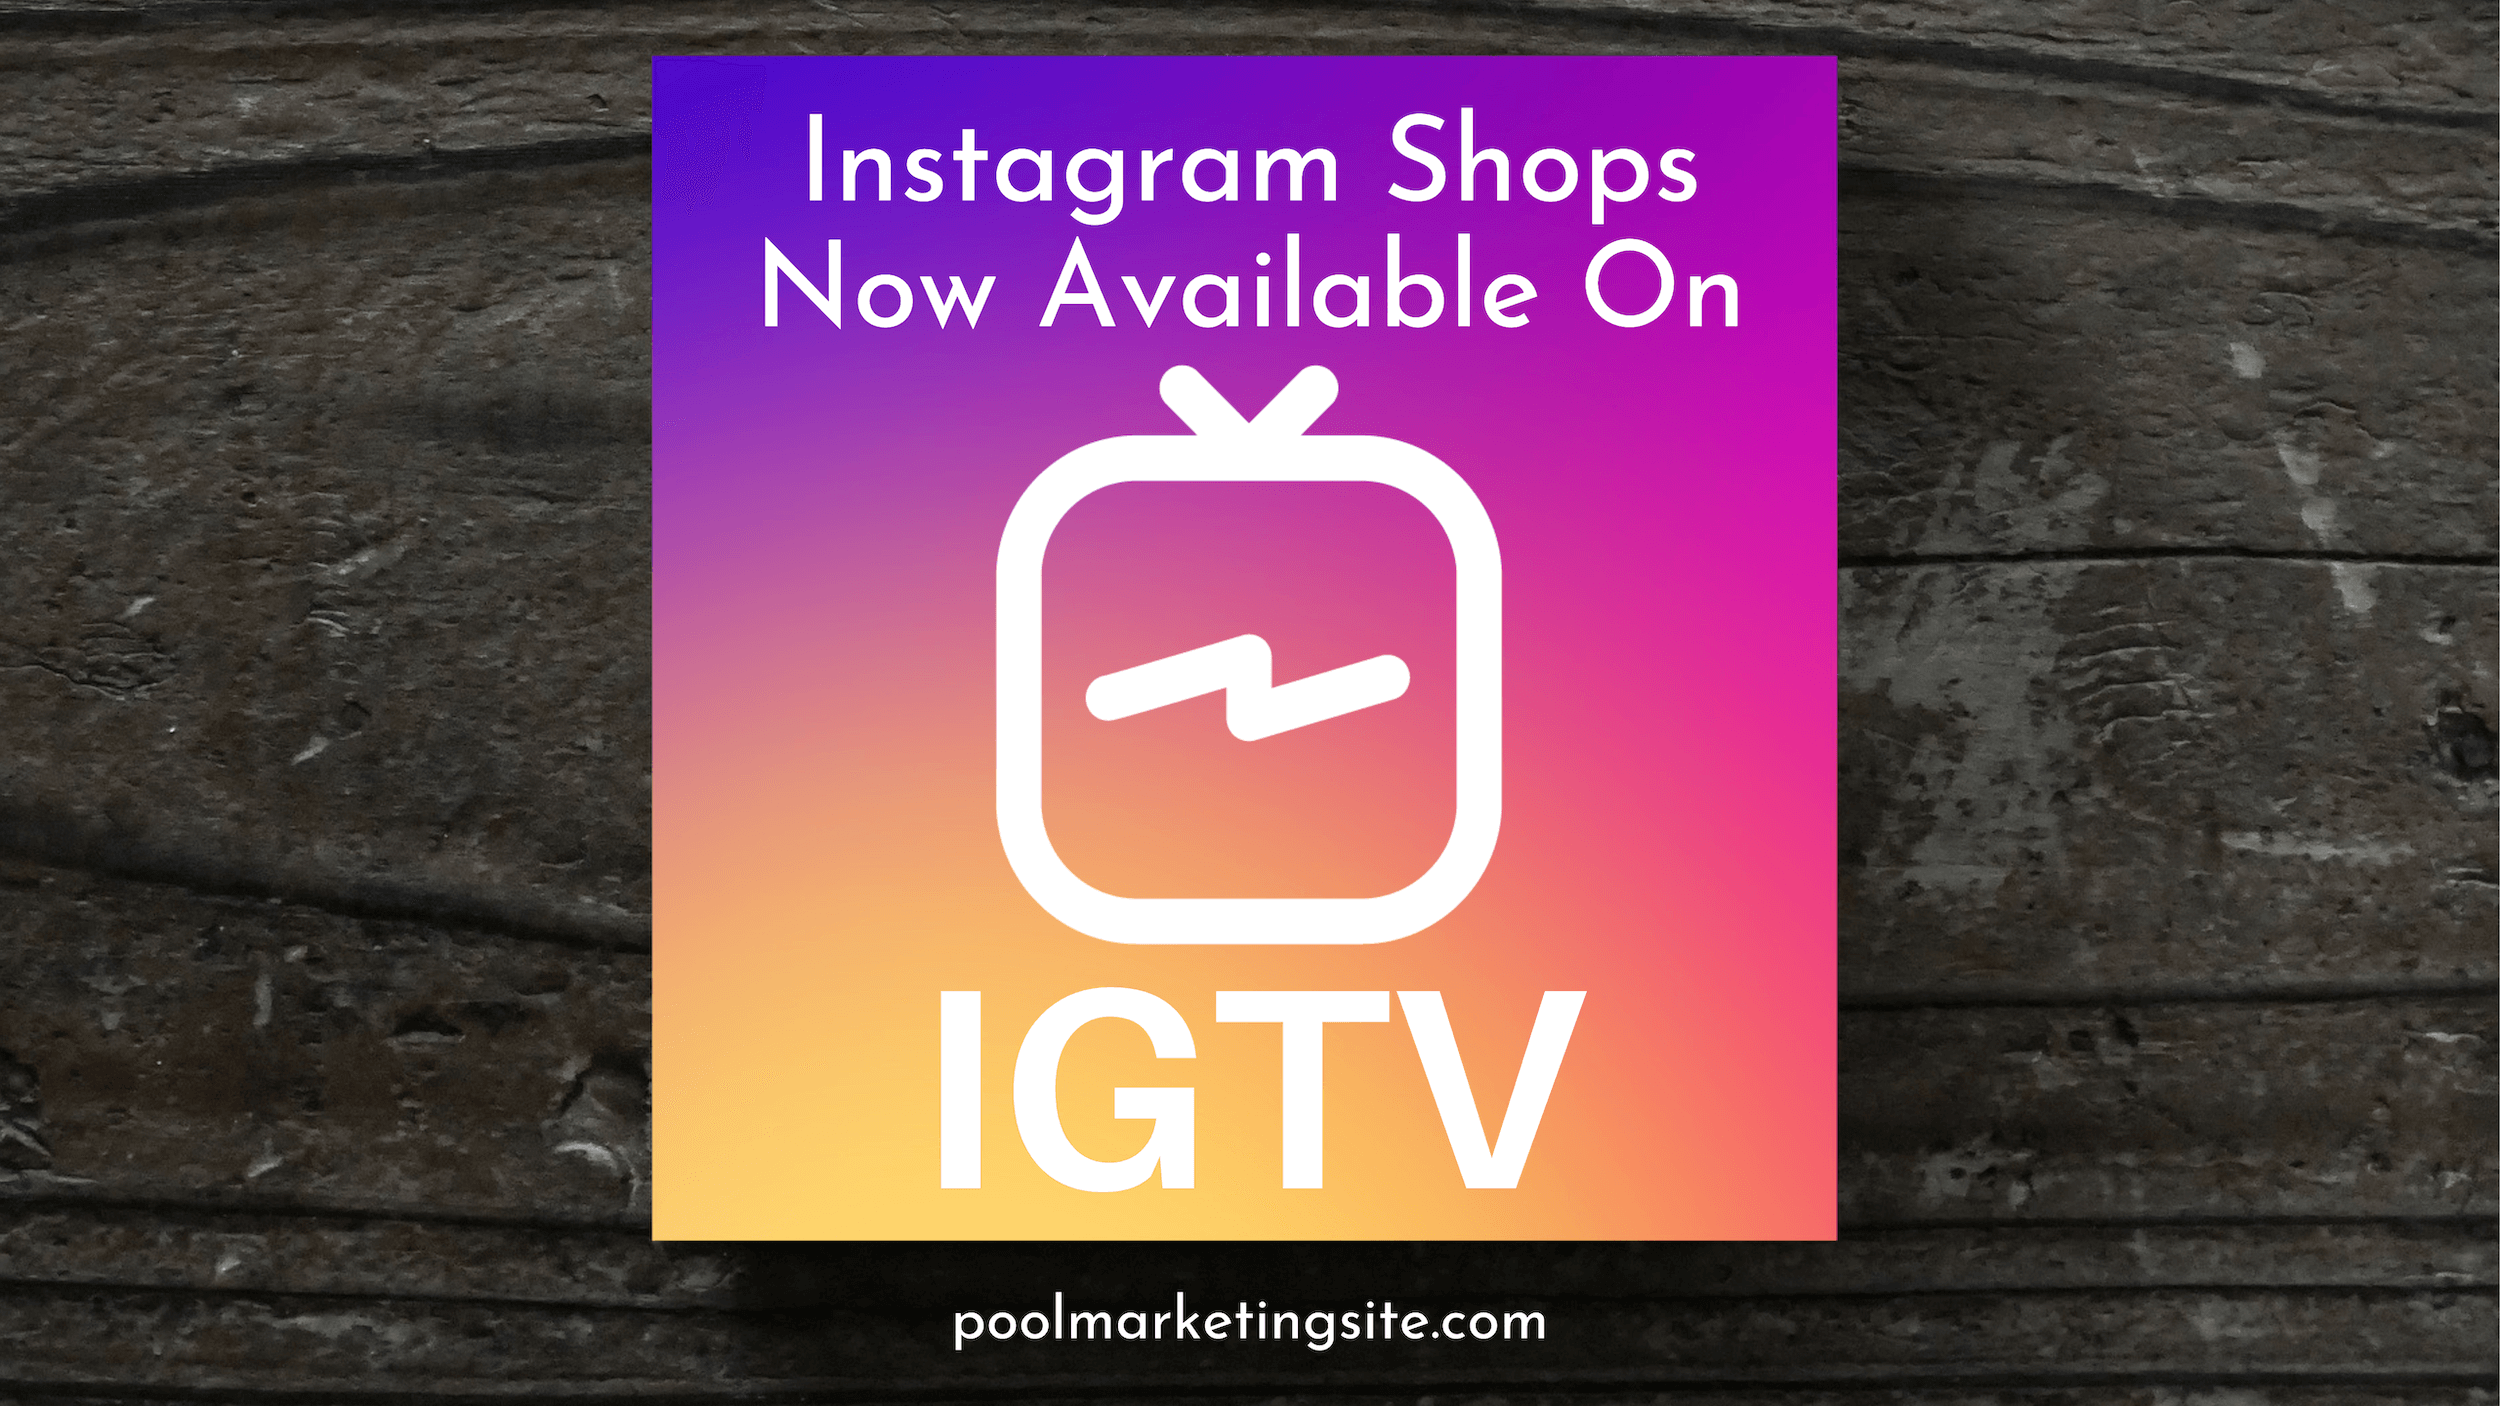 Instagram Shops Now Available on IGTV